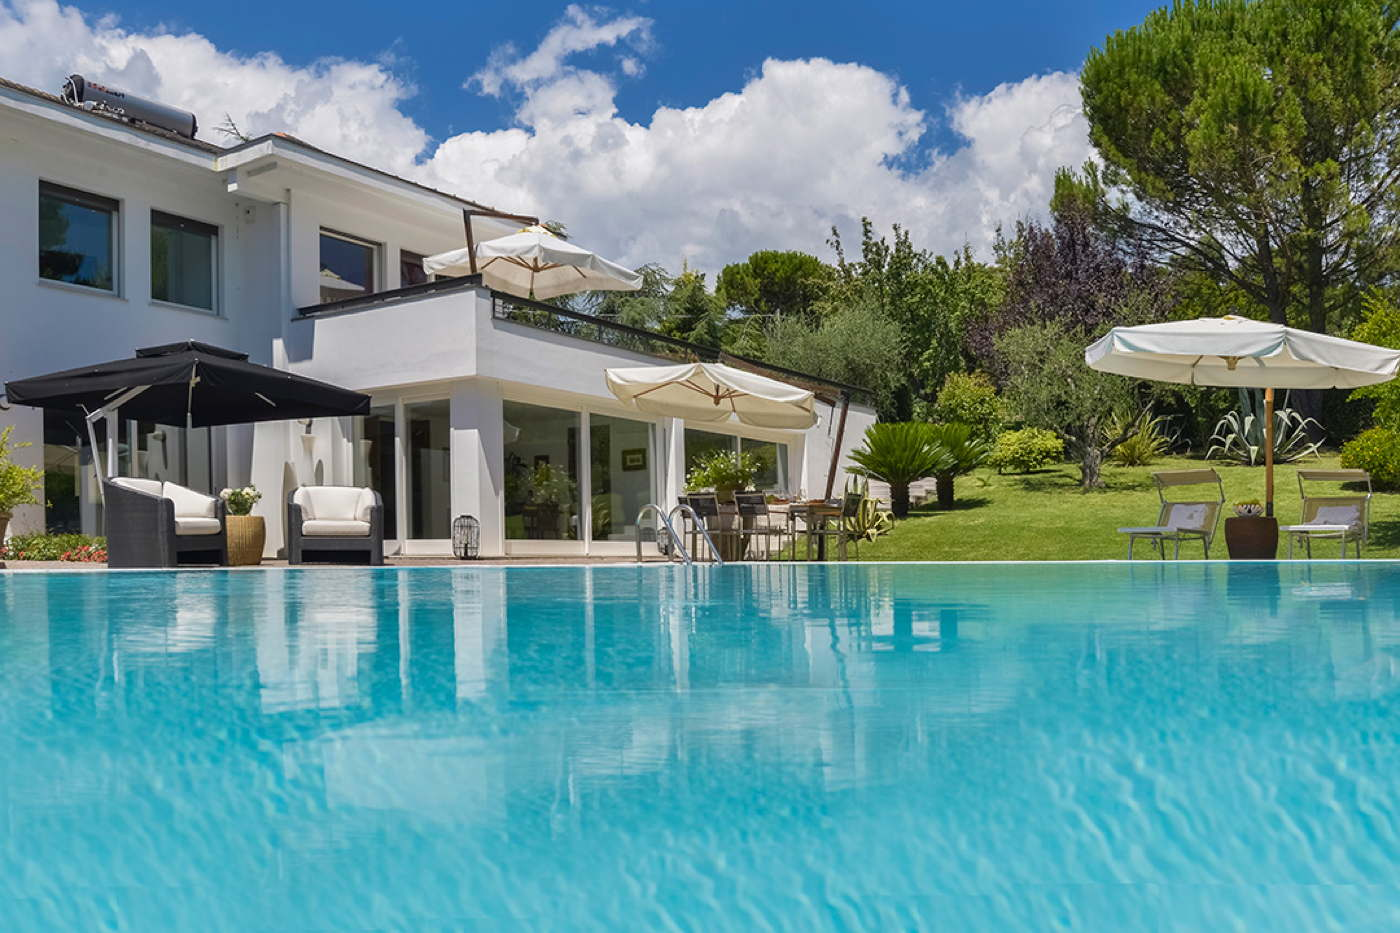 Luxury vacation villa with pool and large garden in italy for Monte villa motor inn